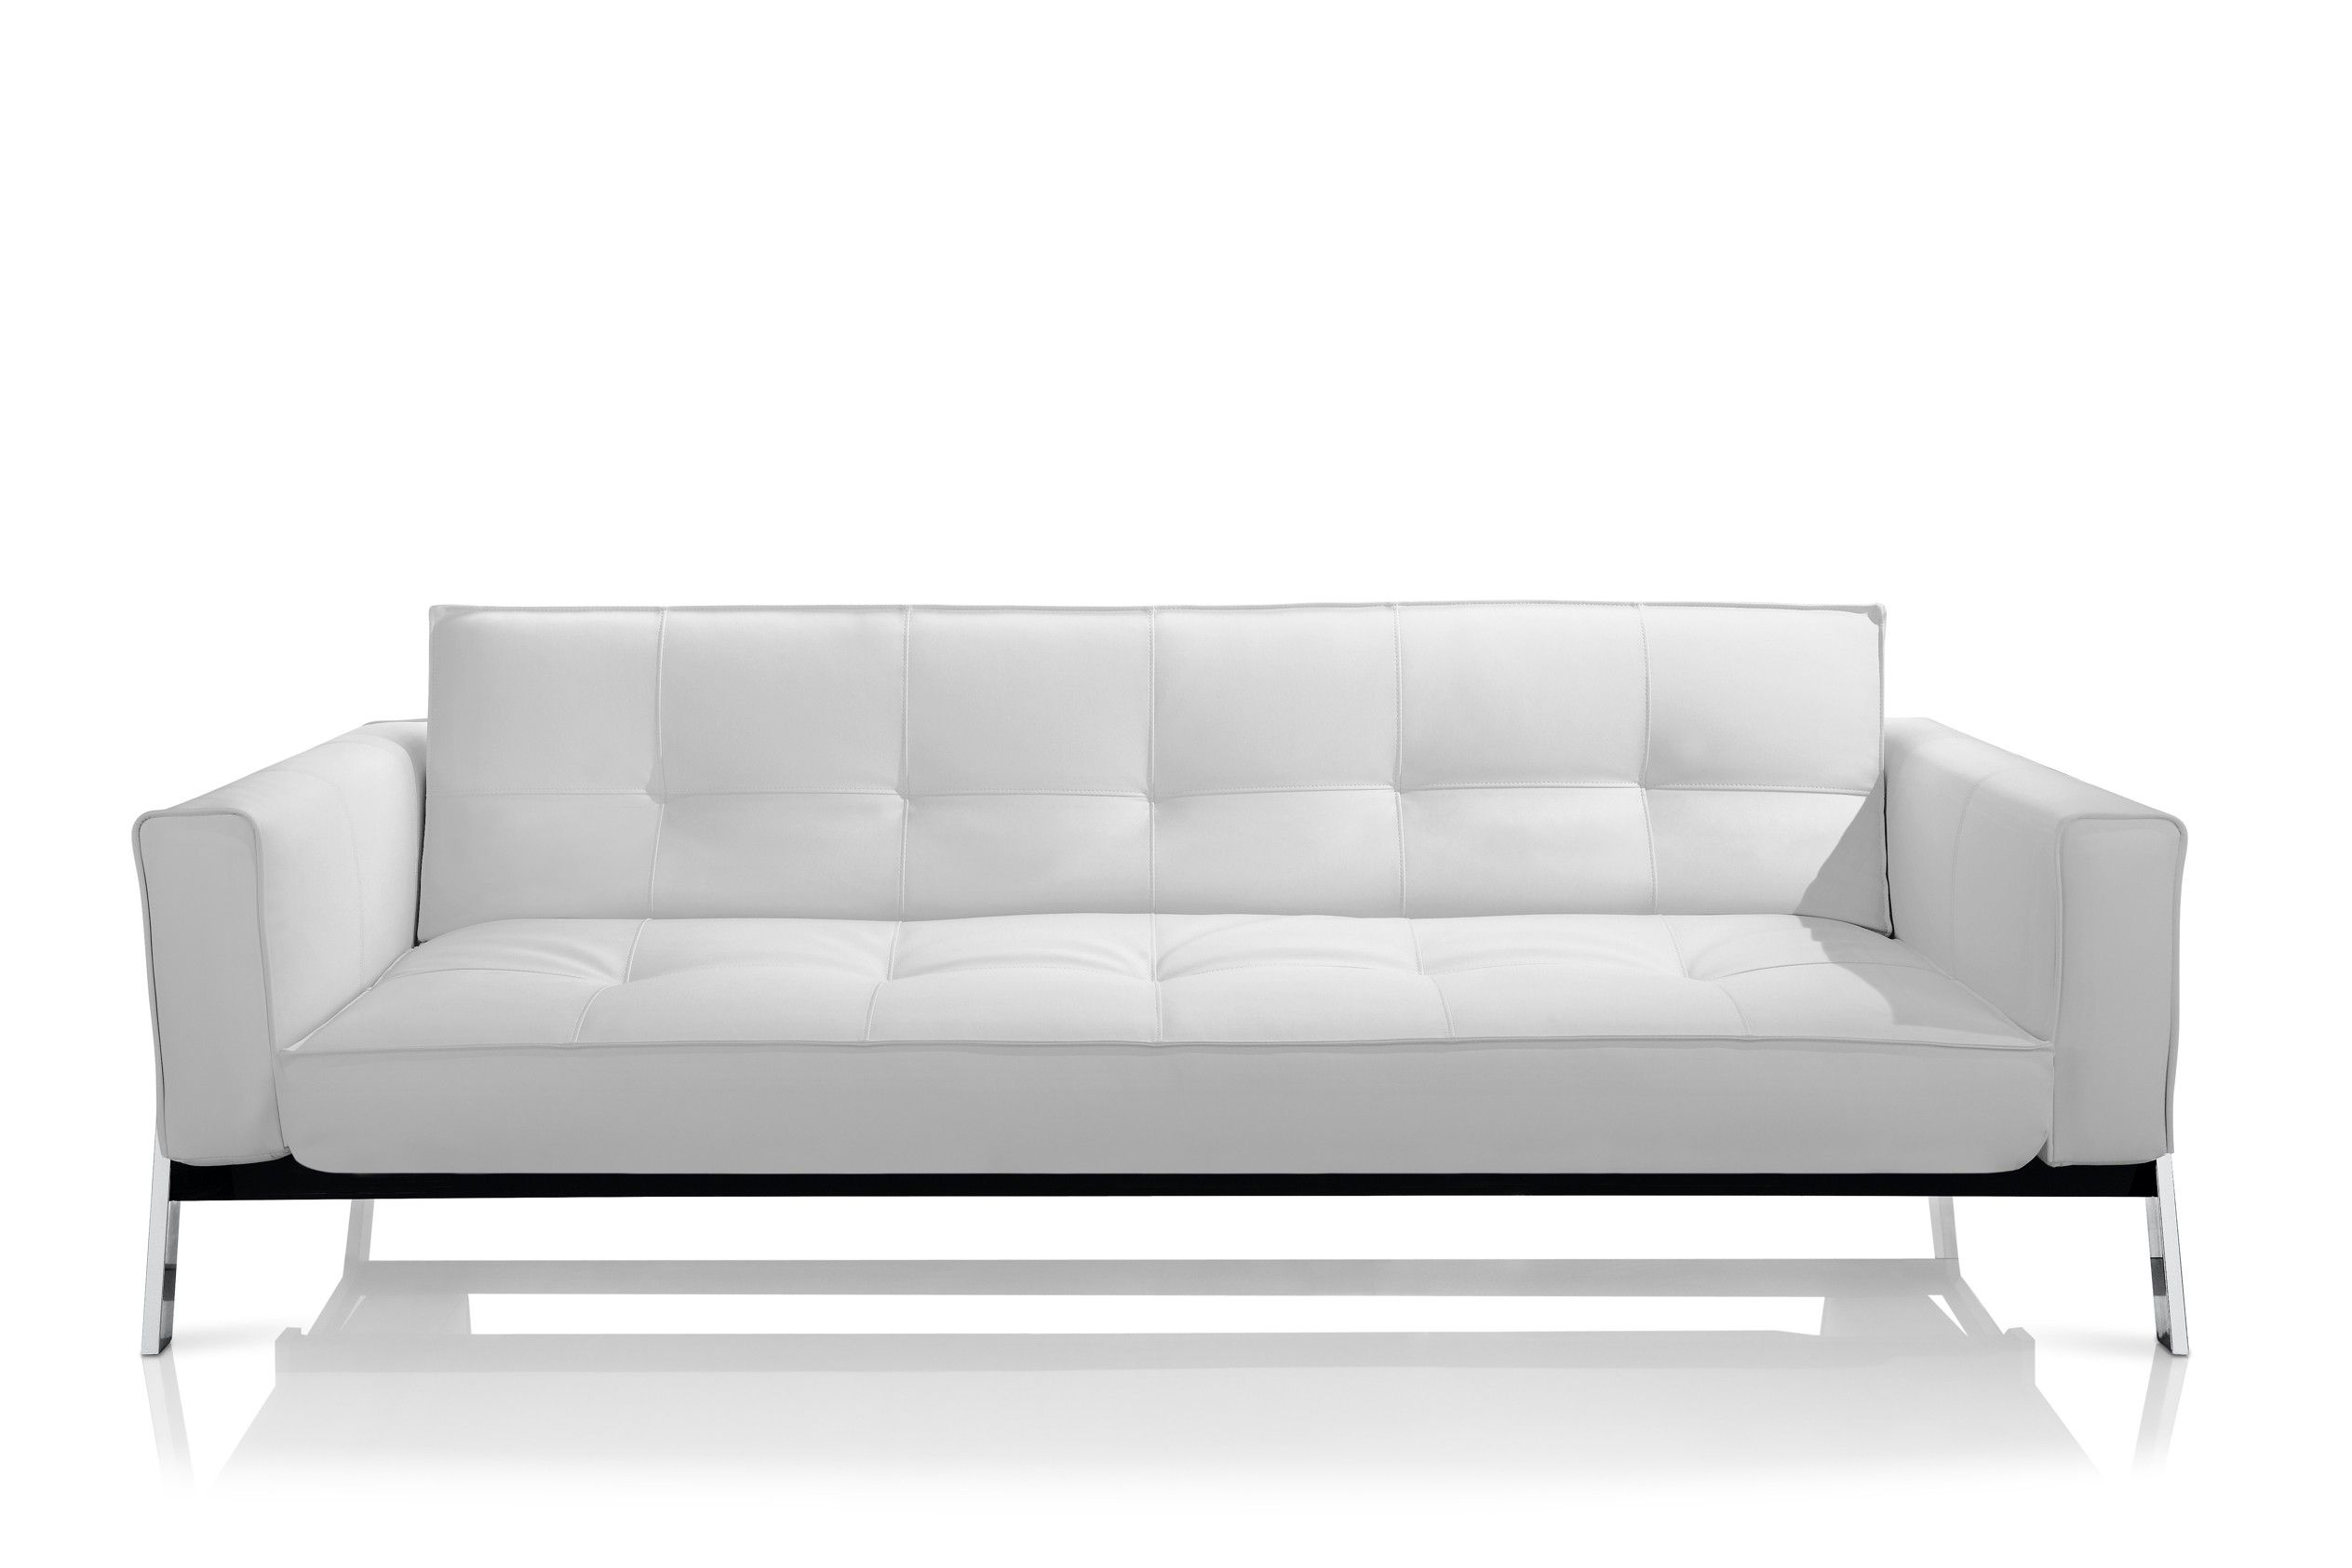 the modern sofa bed space saver furniture